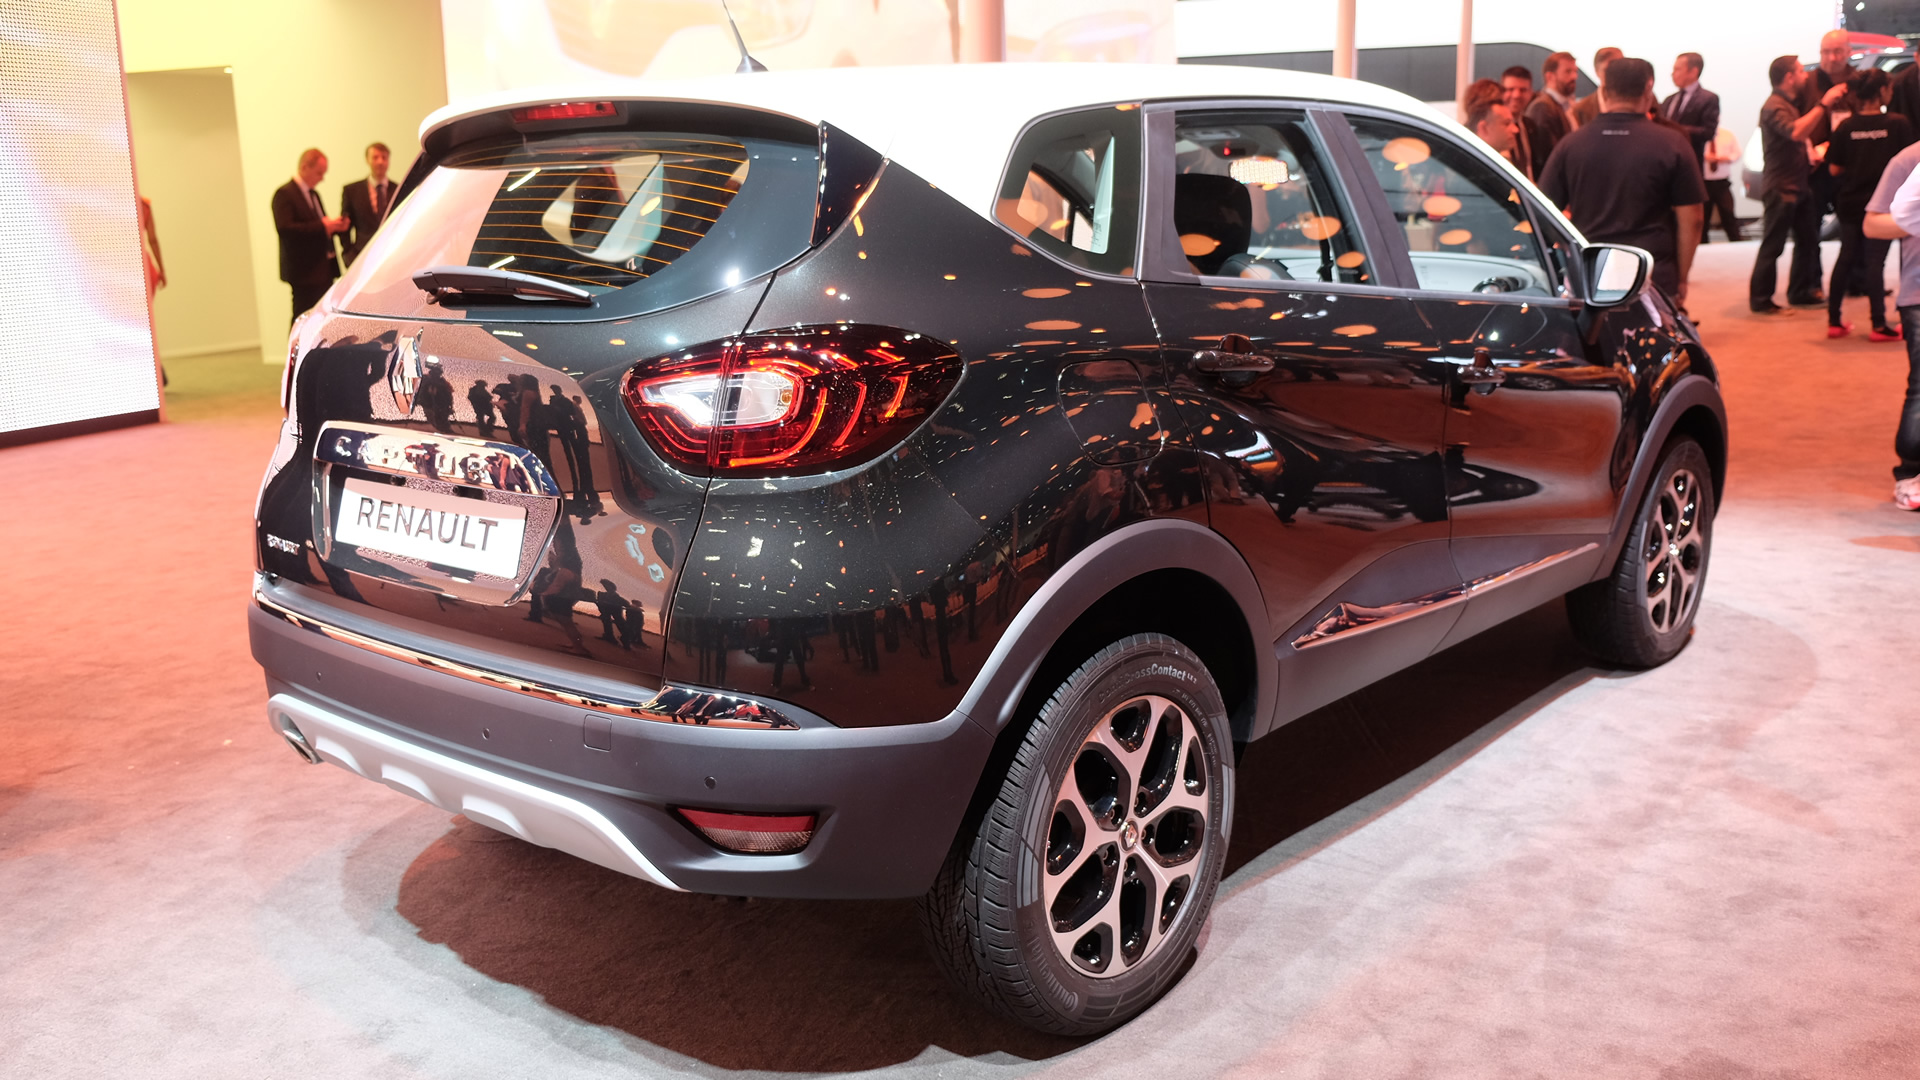 India-bound Renault Kaptur Side Rear Showcased at Sao Paulo Auto Show 2016